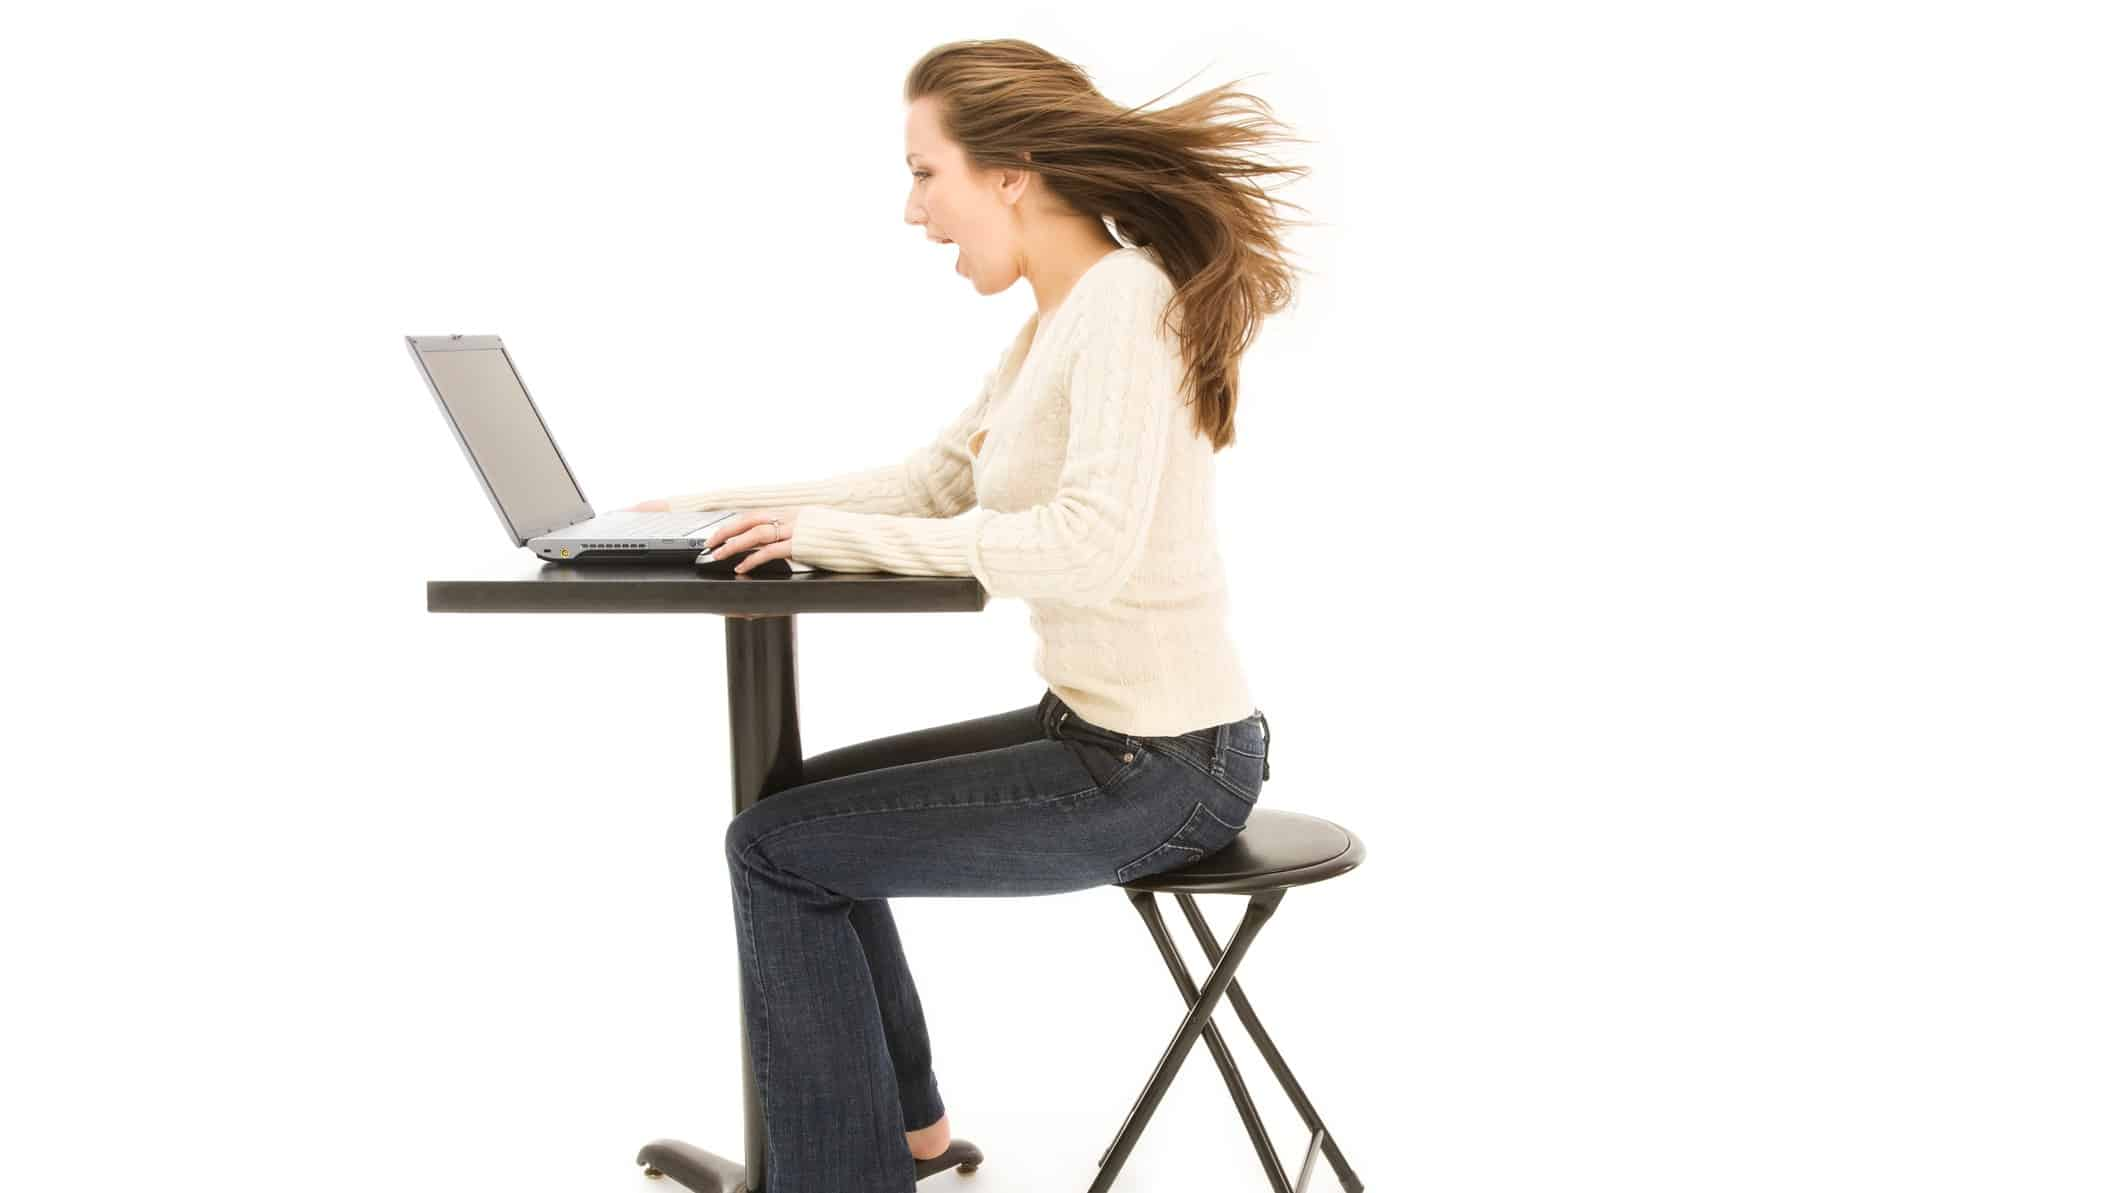 ASX share price rise represented by woman looking excitedly at computer screen